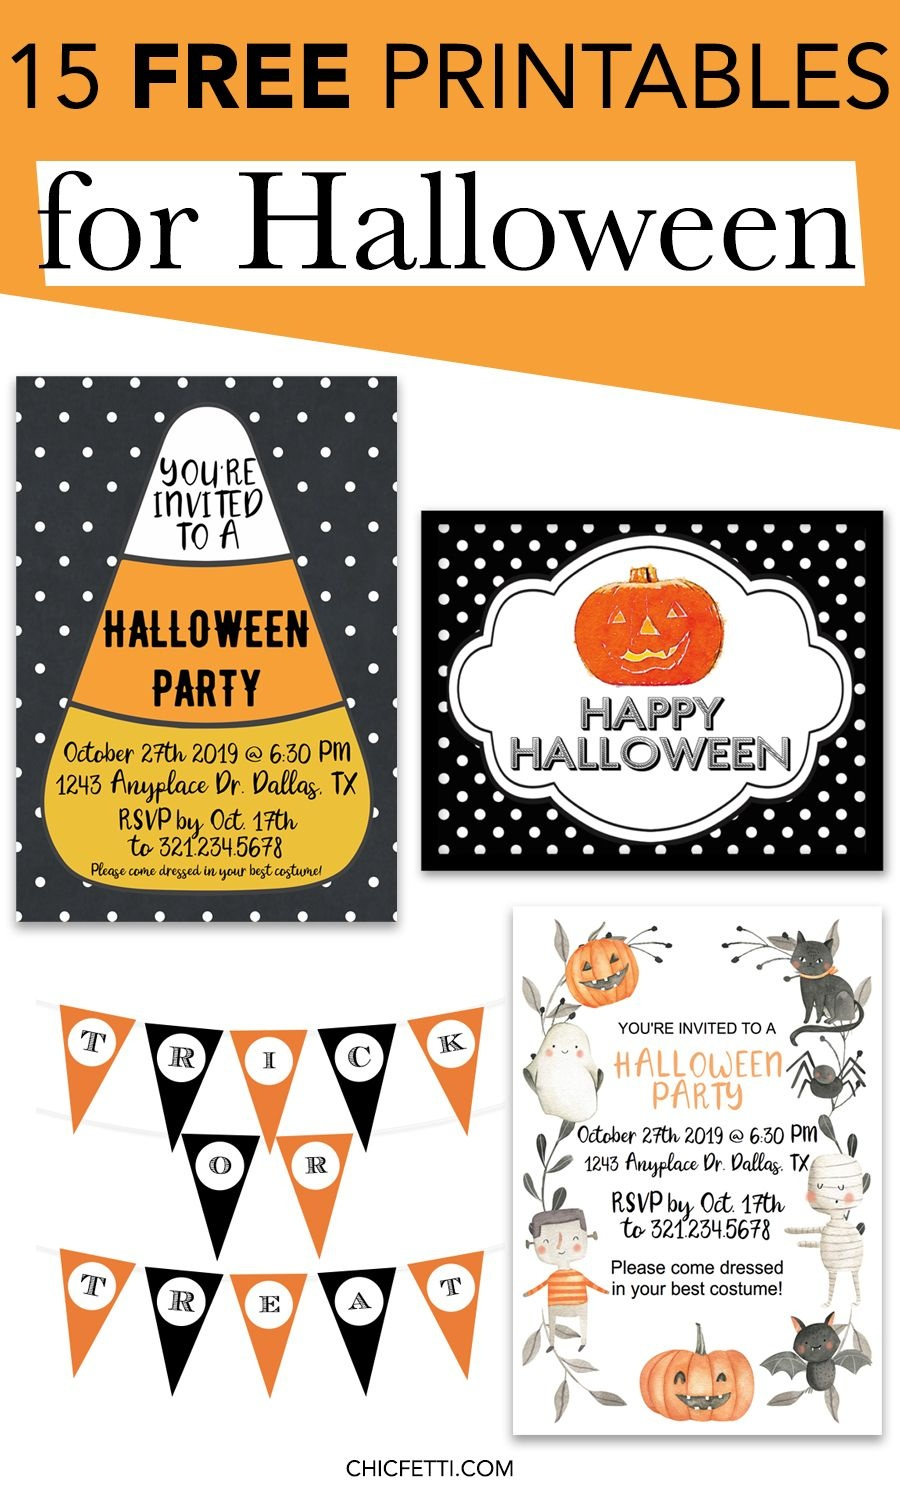 15 Free Printables For Halloween | Printable Wall Art For Home And - Free Printable Halloween Banner